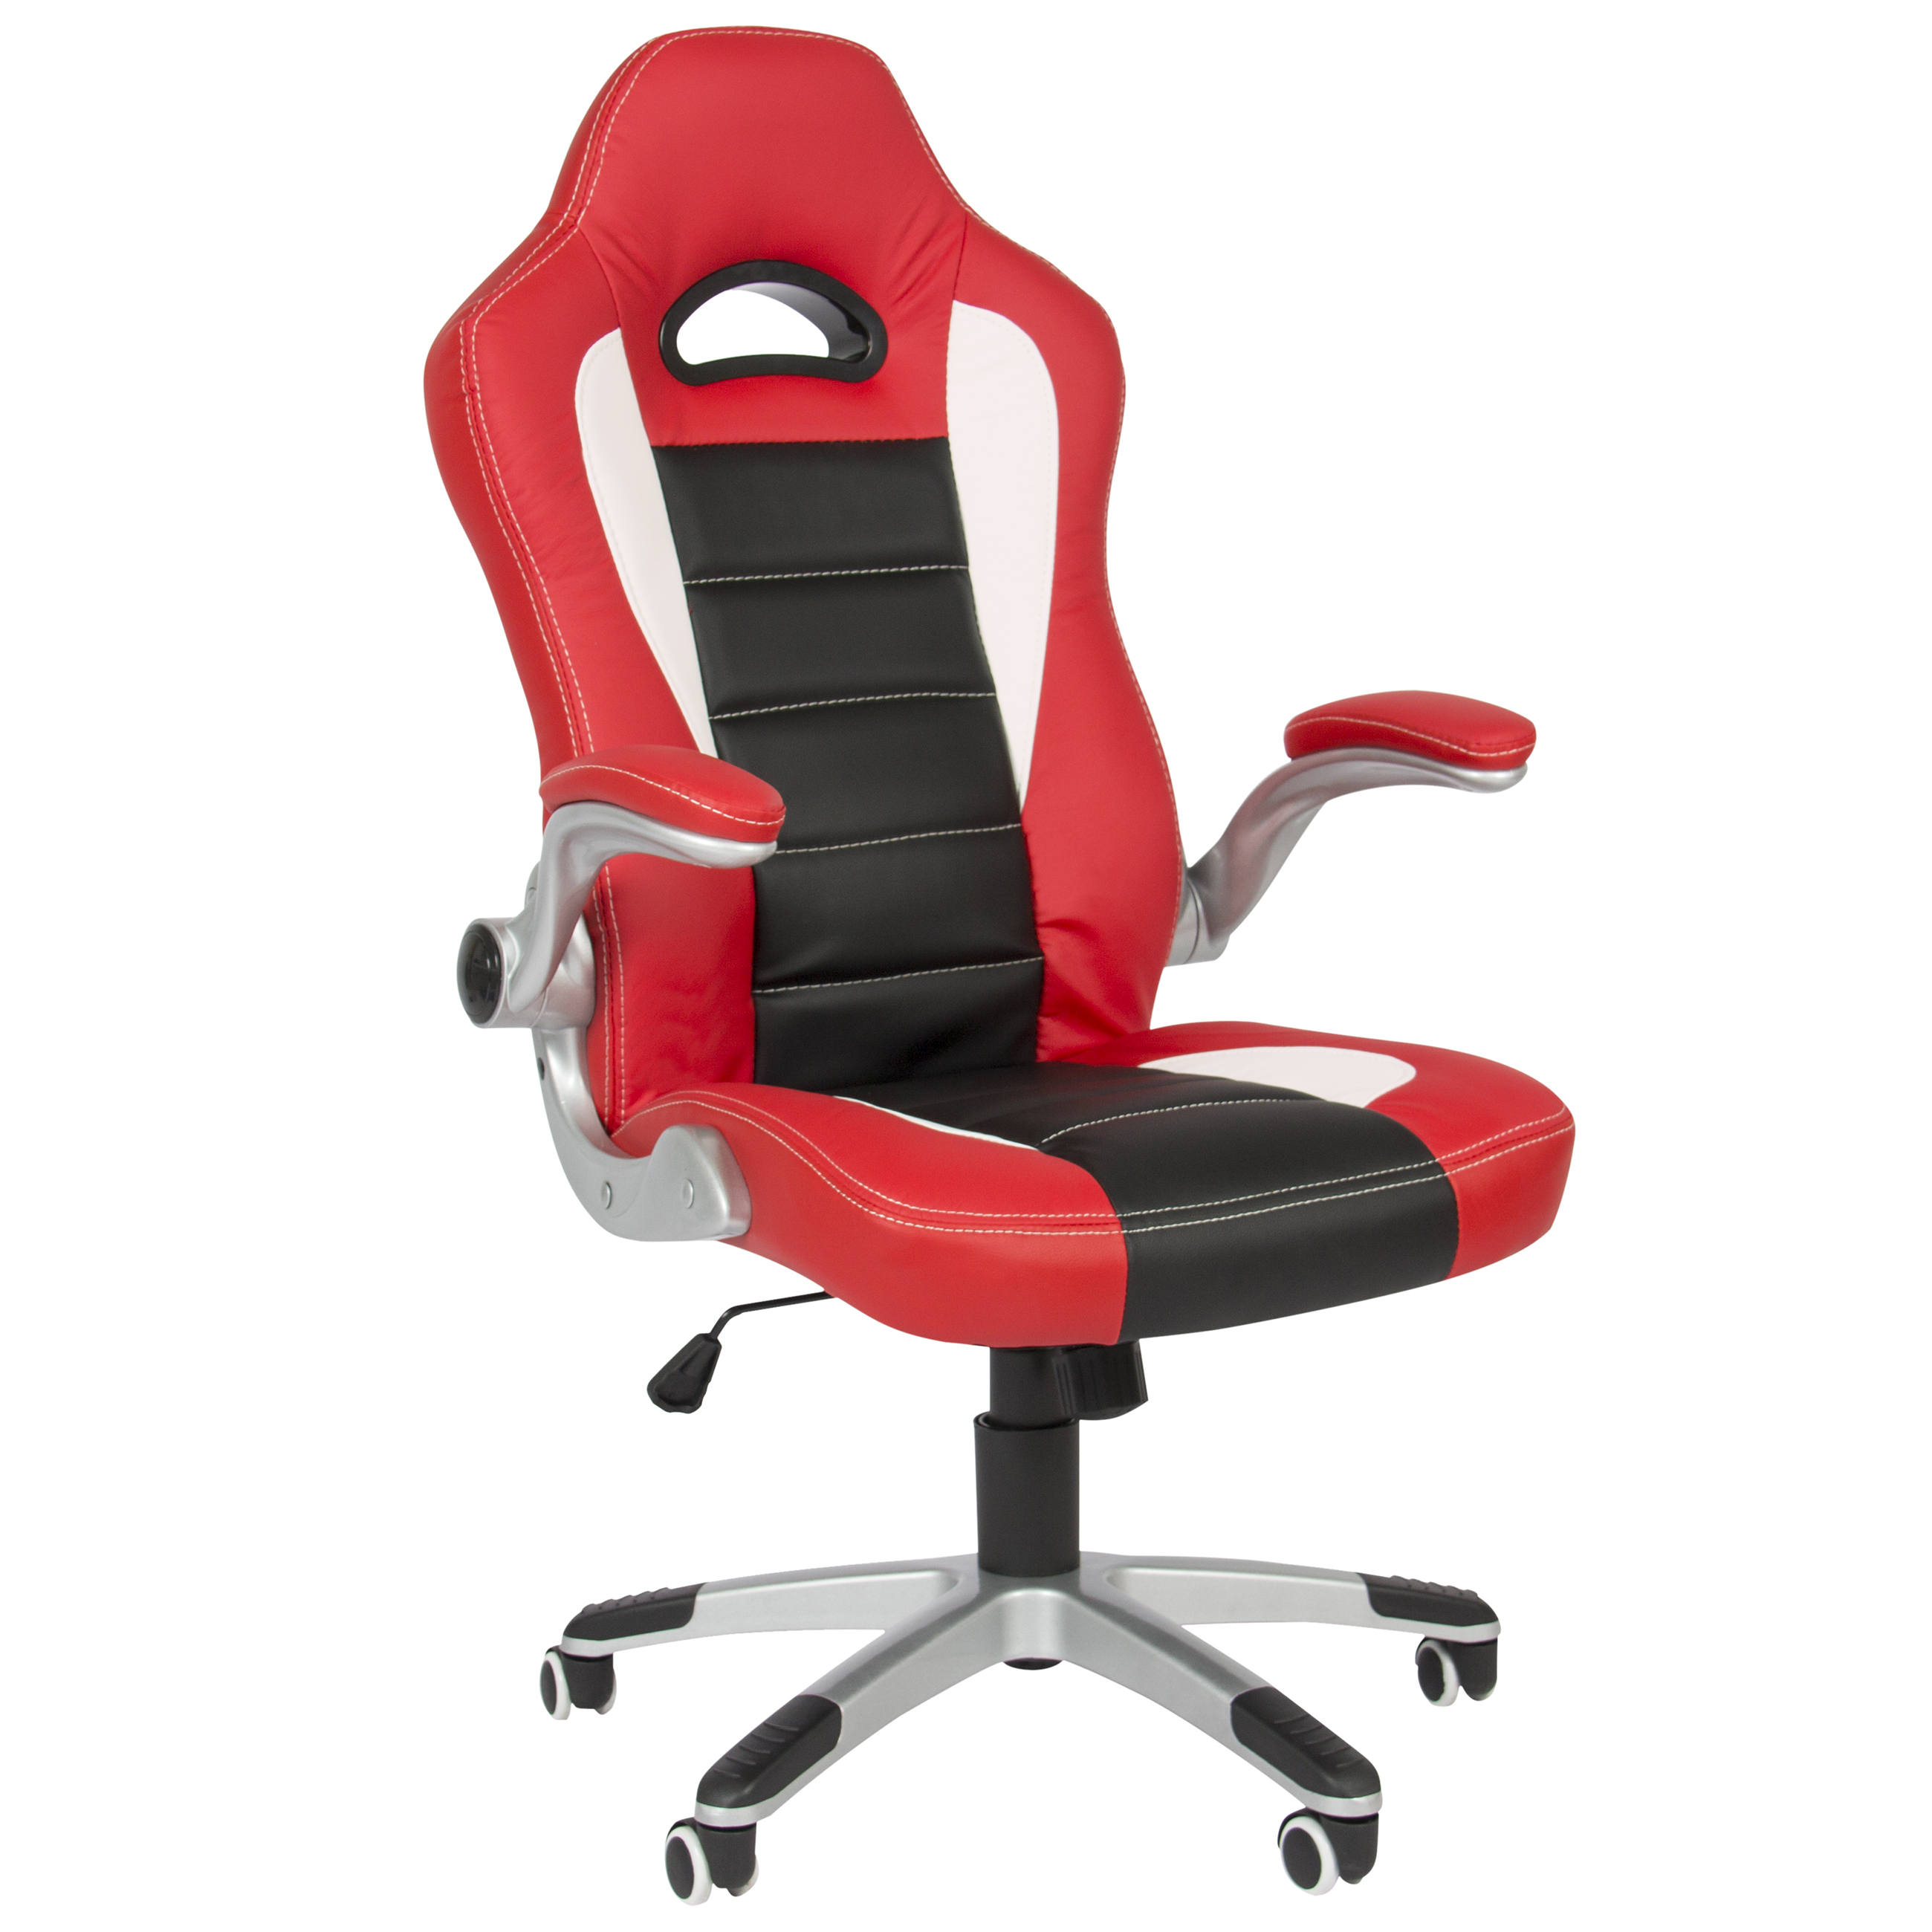 Executive Office Chair PU Leather Racing Style Bucket Desk Seat Chair Red